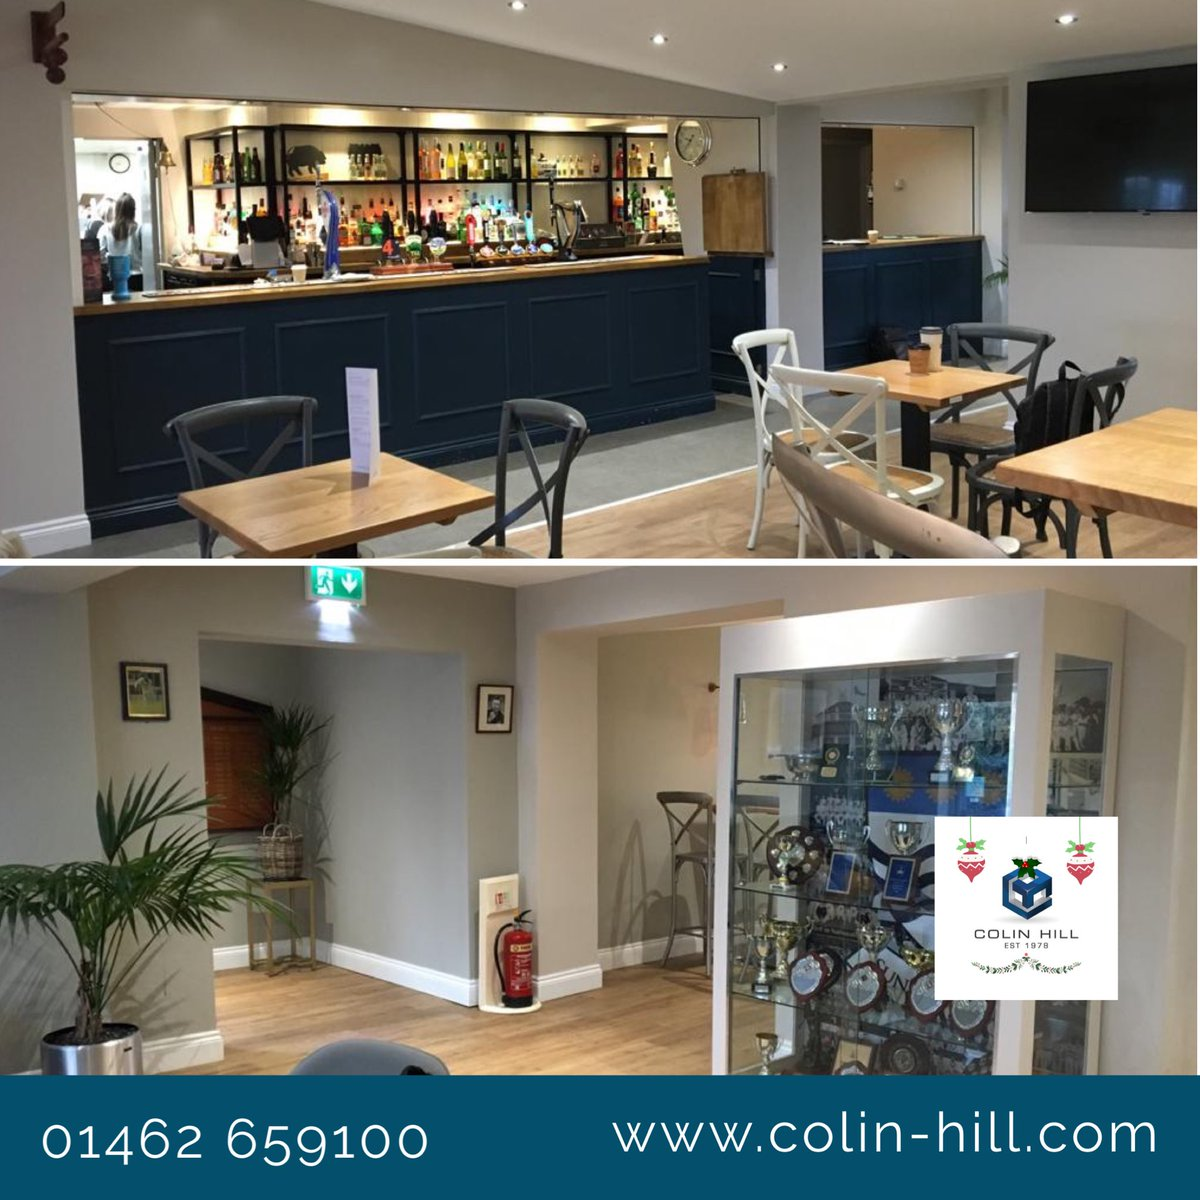 We visited the team at Sunbury Cricket Club this week @sunburycc to add some finishing touches to our recent refurbishment project of their social club, our clients are over the moon with their brand new space #barrefurbishment #bar #cricketclub #sportsclubpic.twitter.com/pjtdBPuJ2r